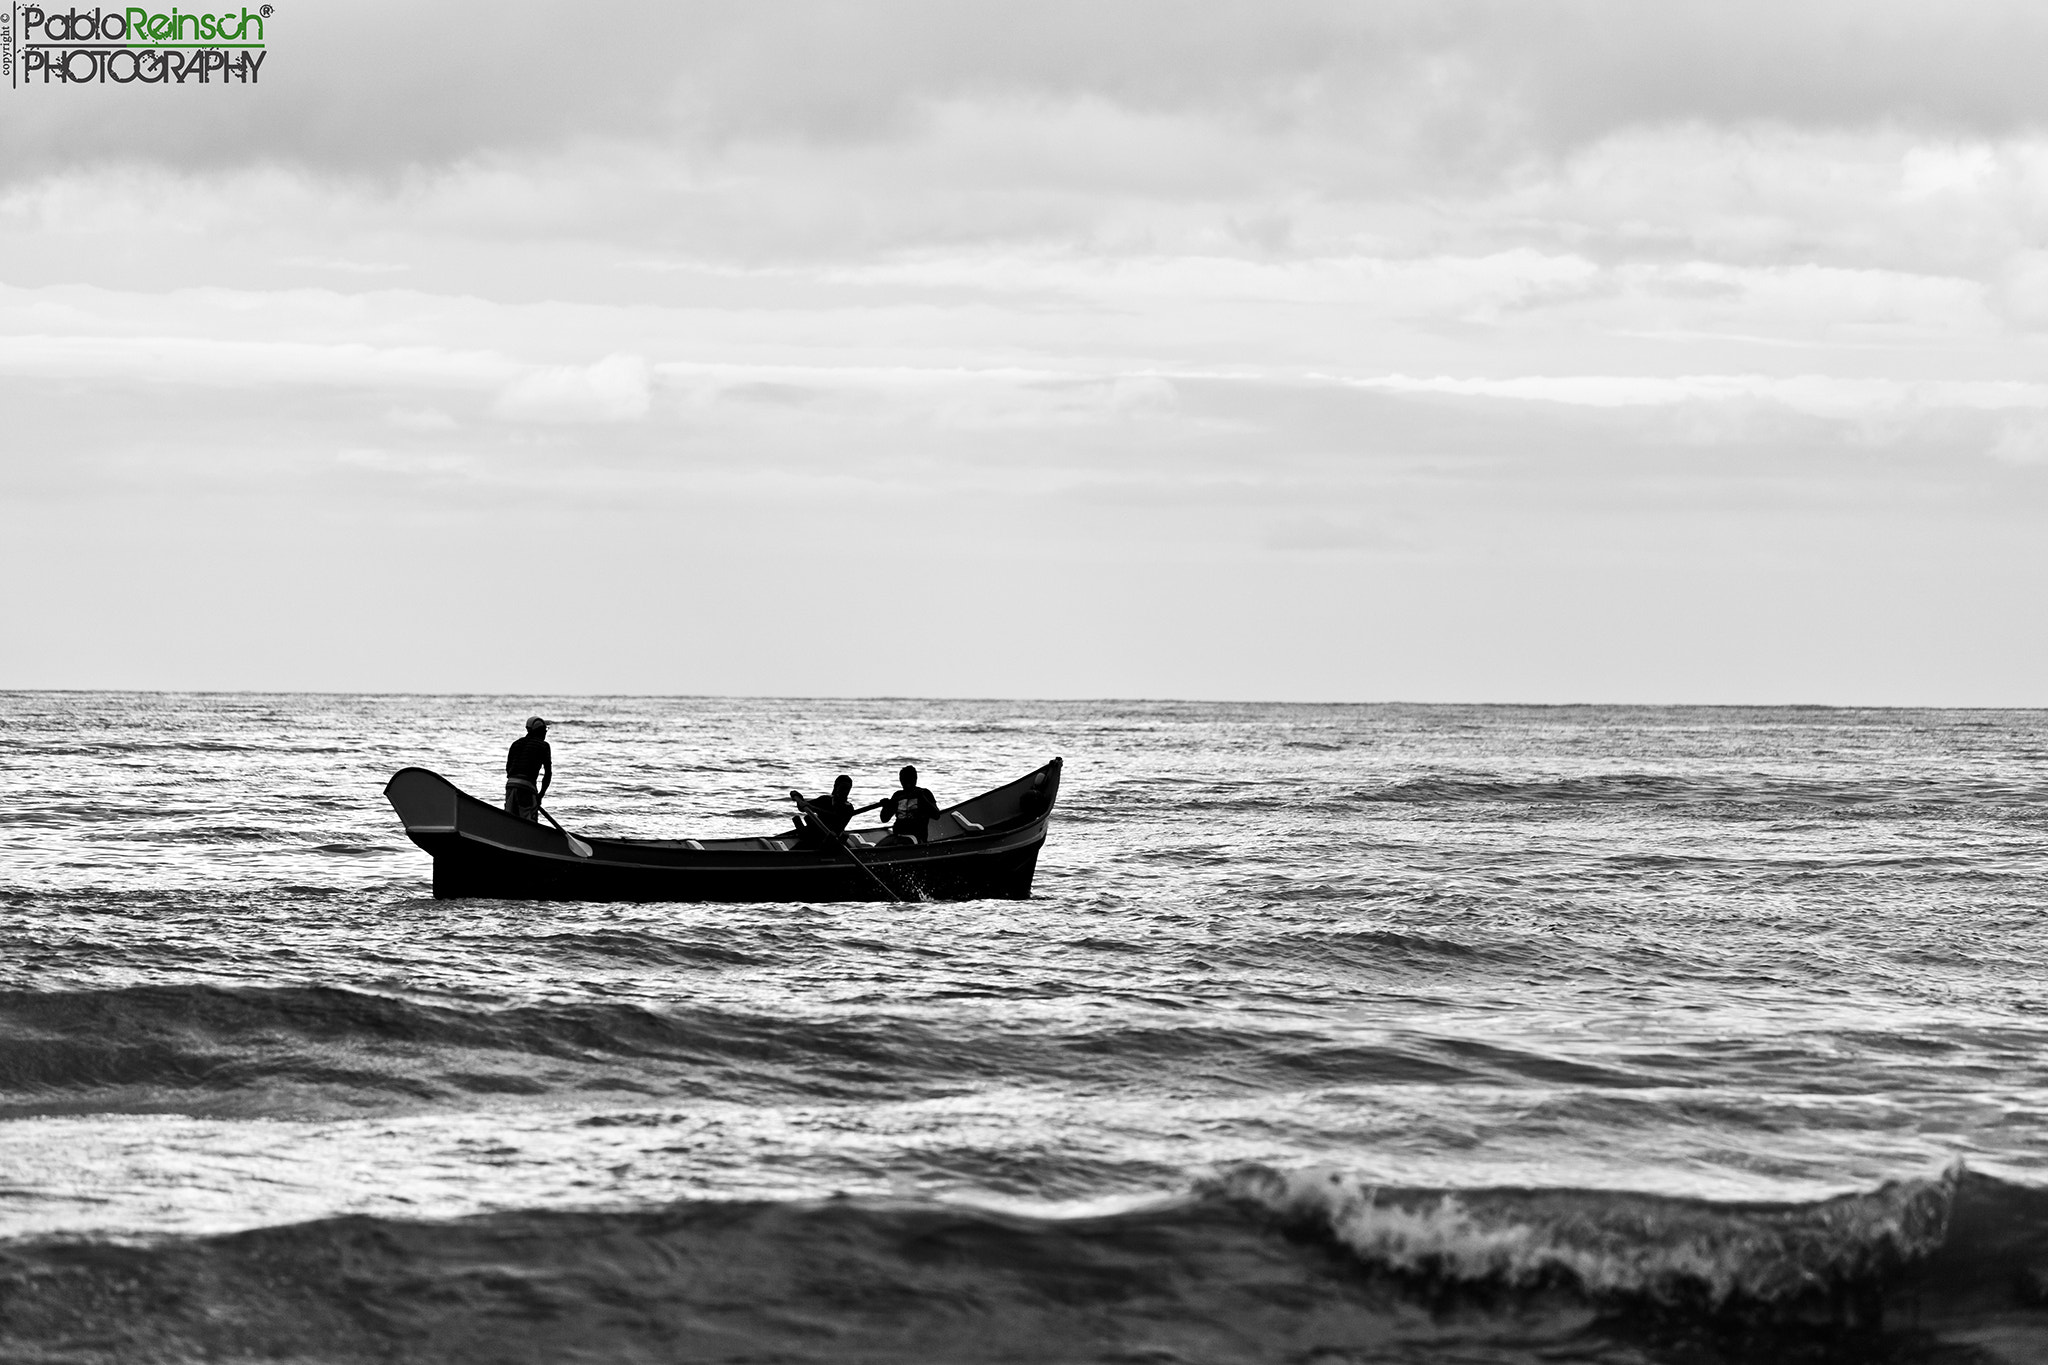 Photograph Fishing boat.-  by Pablo Reinsch on 500px